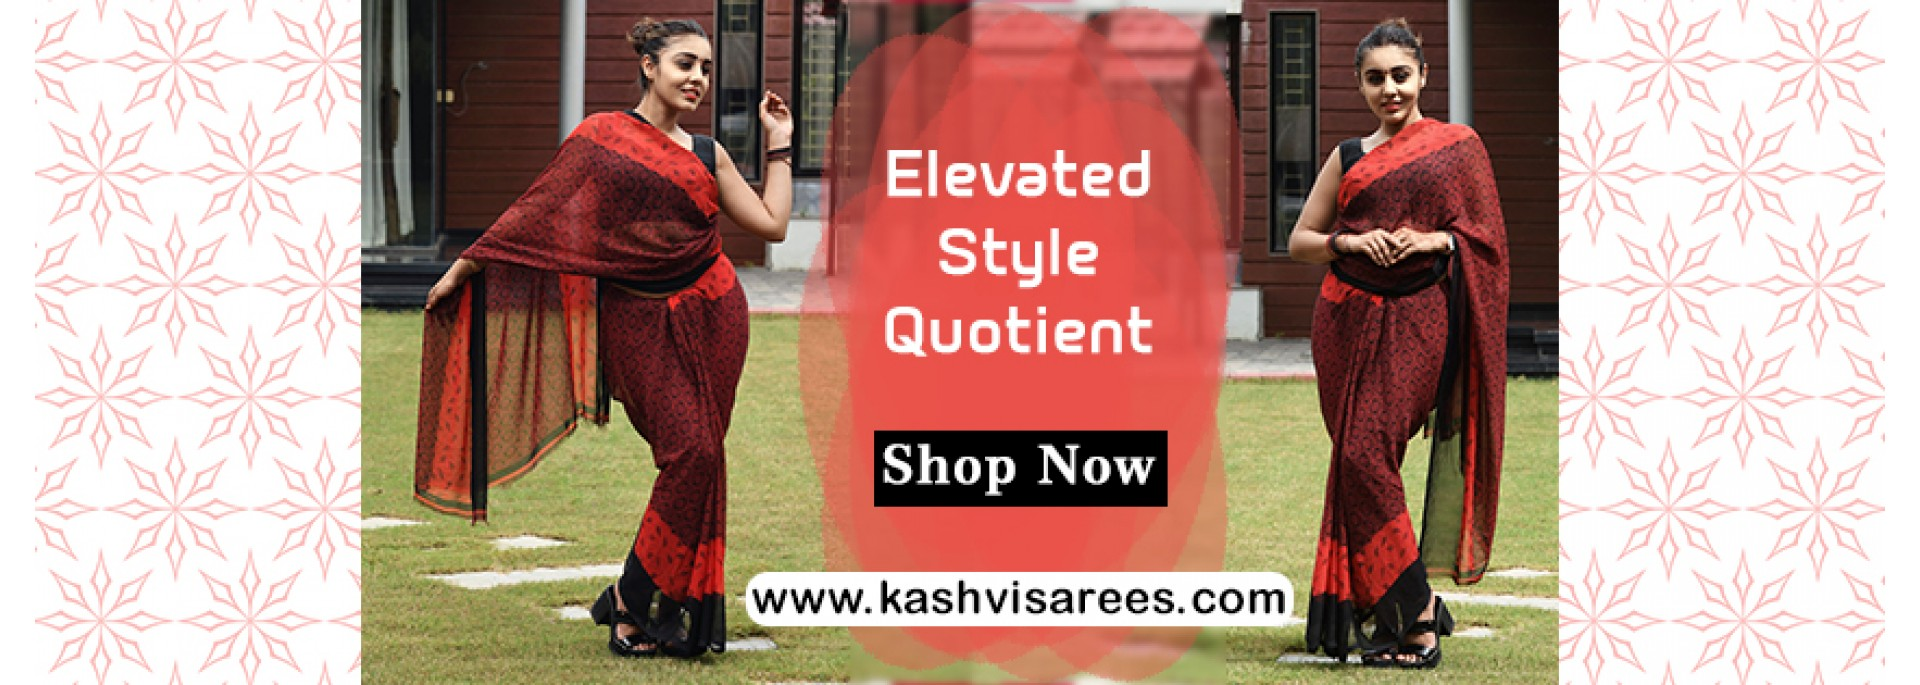 Elevated Style Quotient